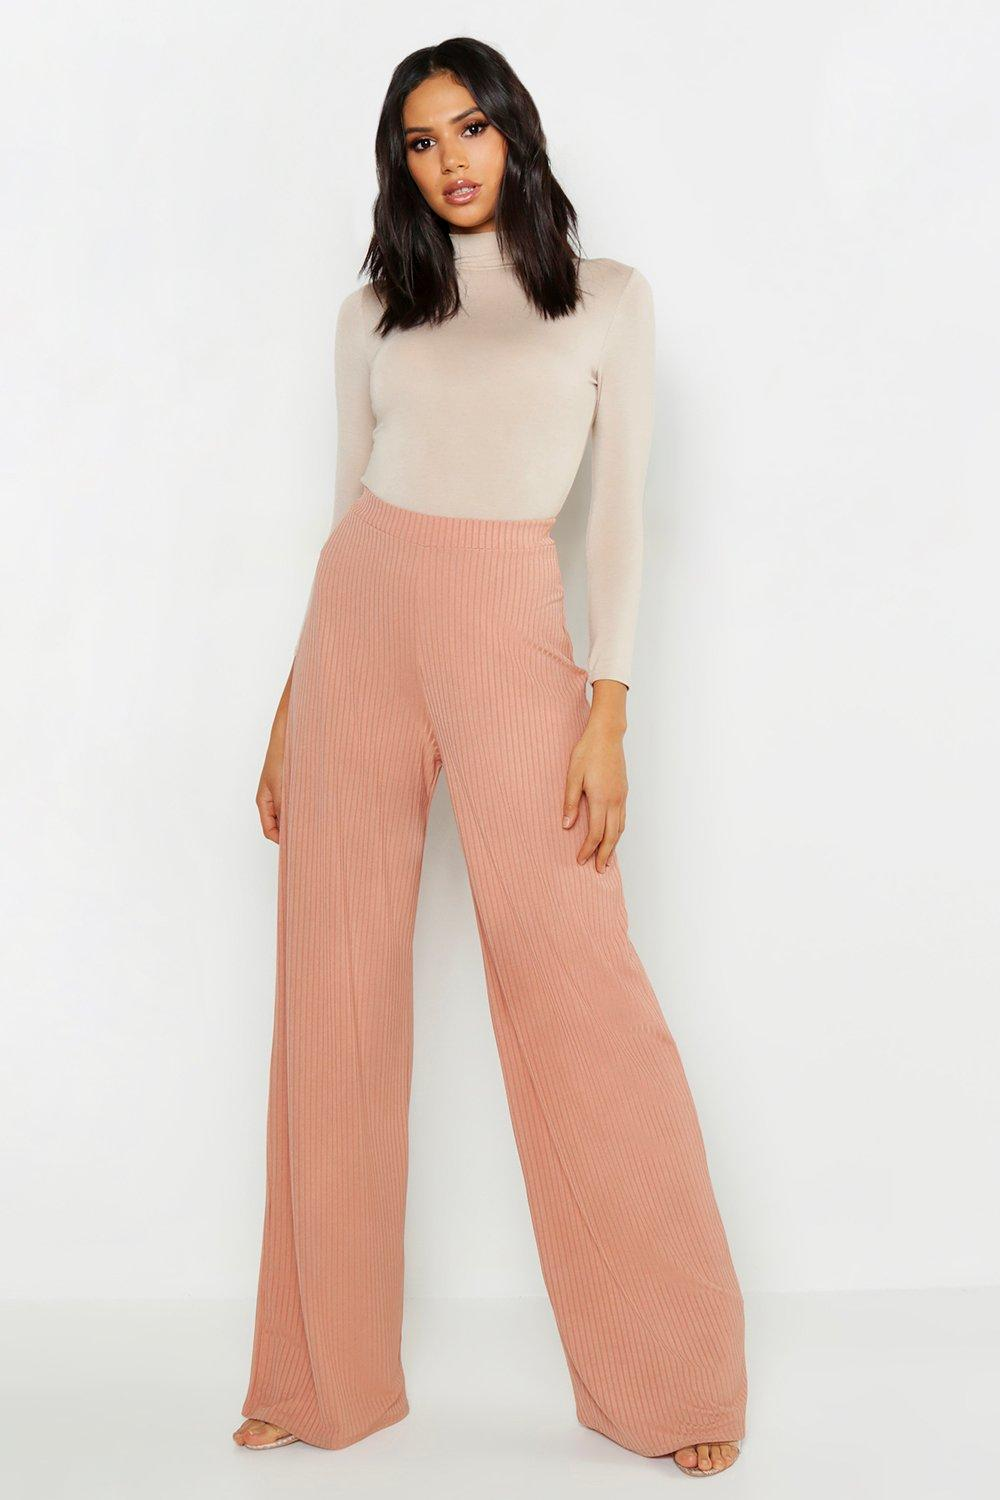 31a0193f4be96 Tall Jumbo Rib Wide Legged Trouser. Hover to zoom